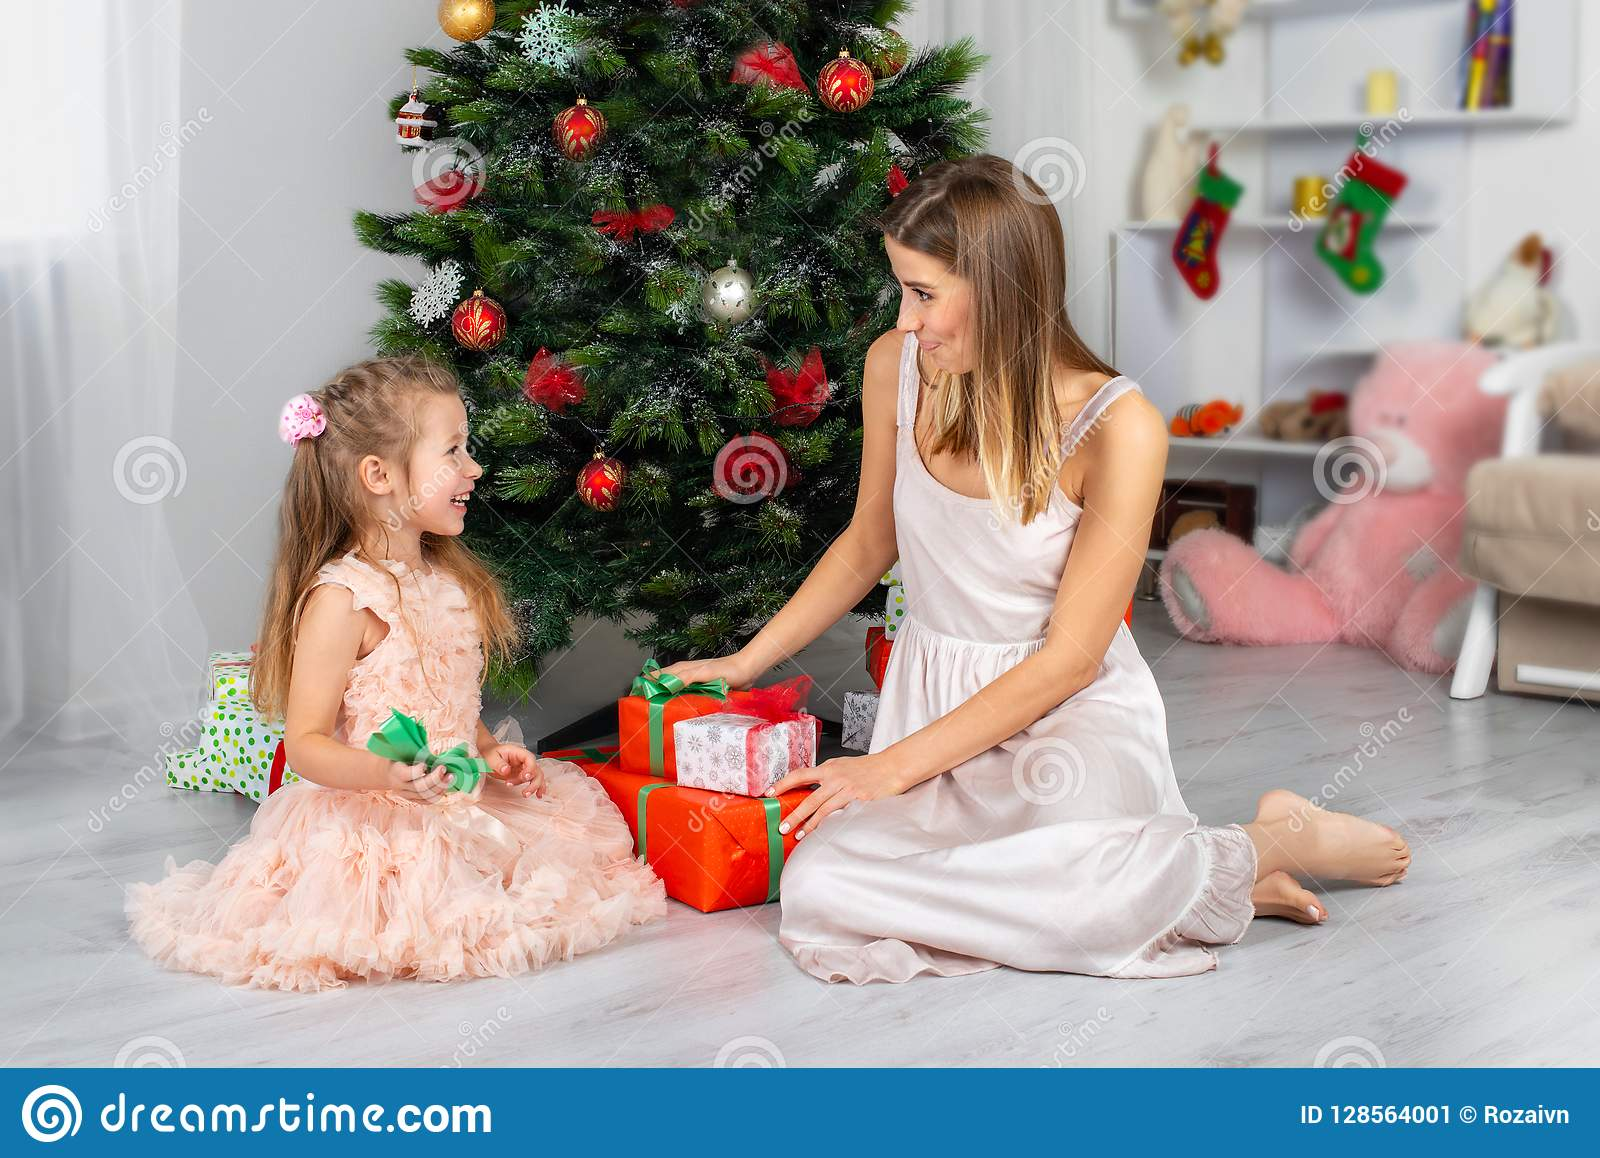 The happy and smiling mother with the daughter sit at a Christmas tree with gifts in hands